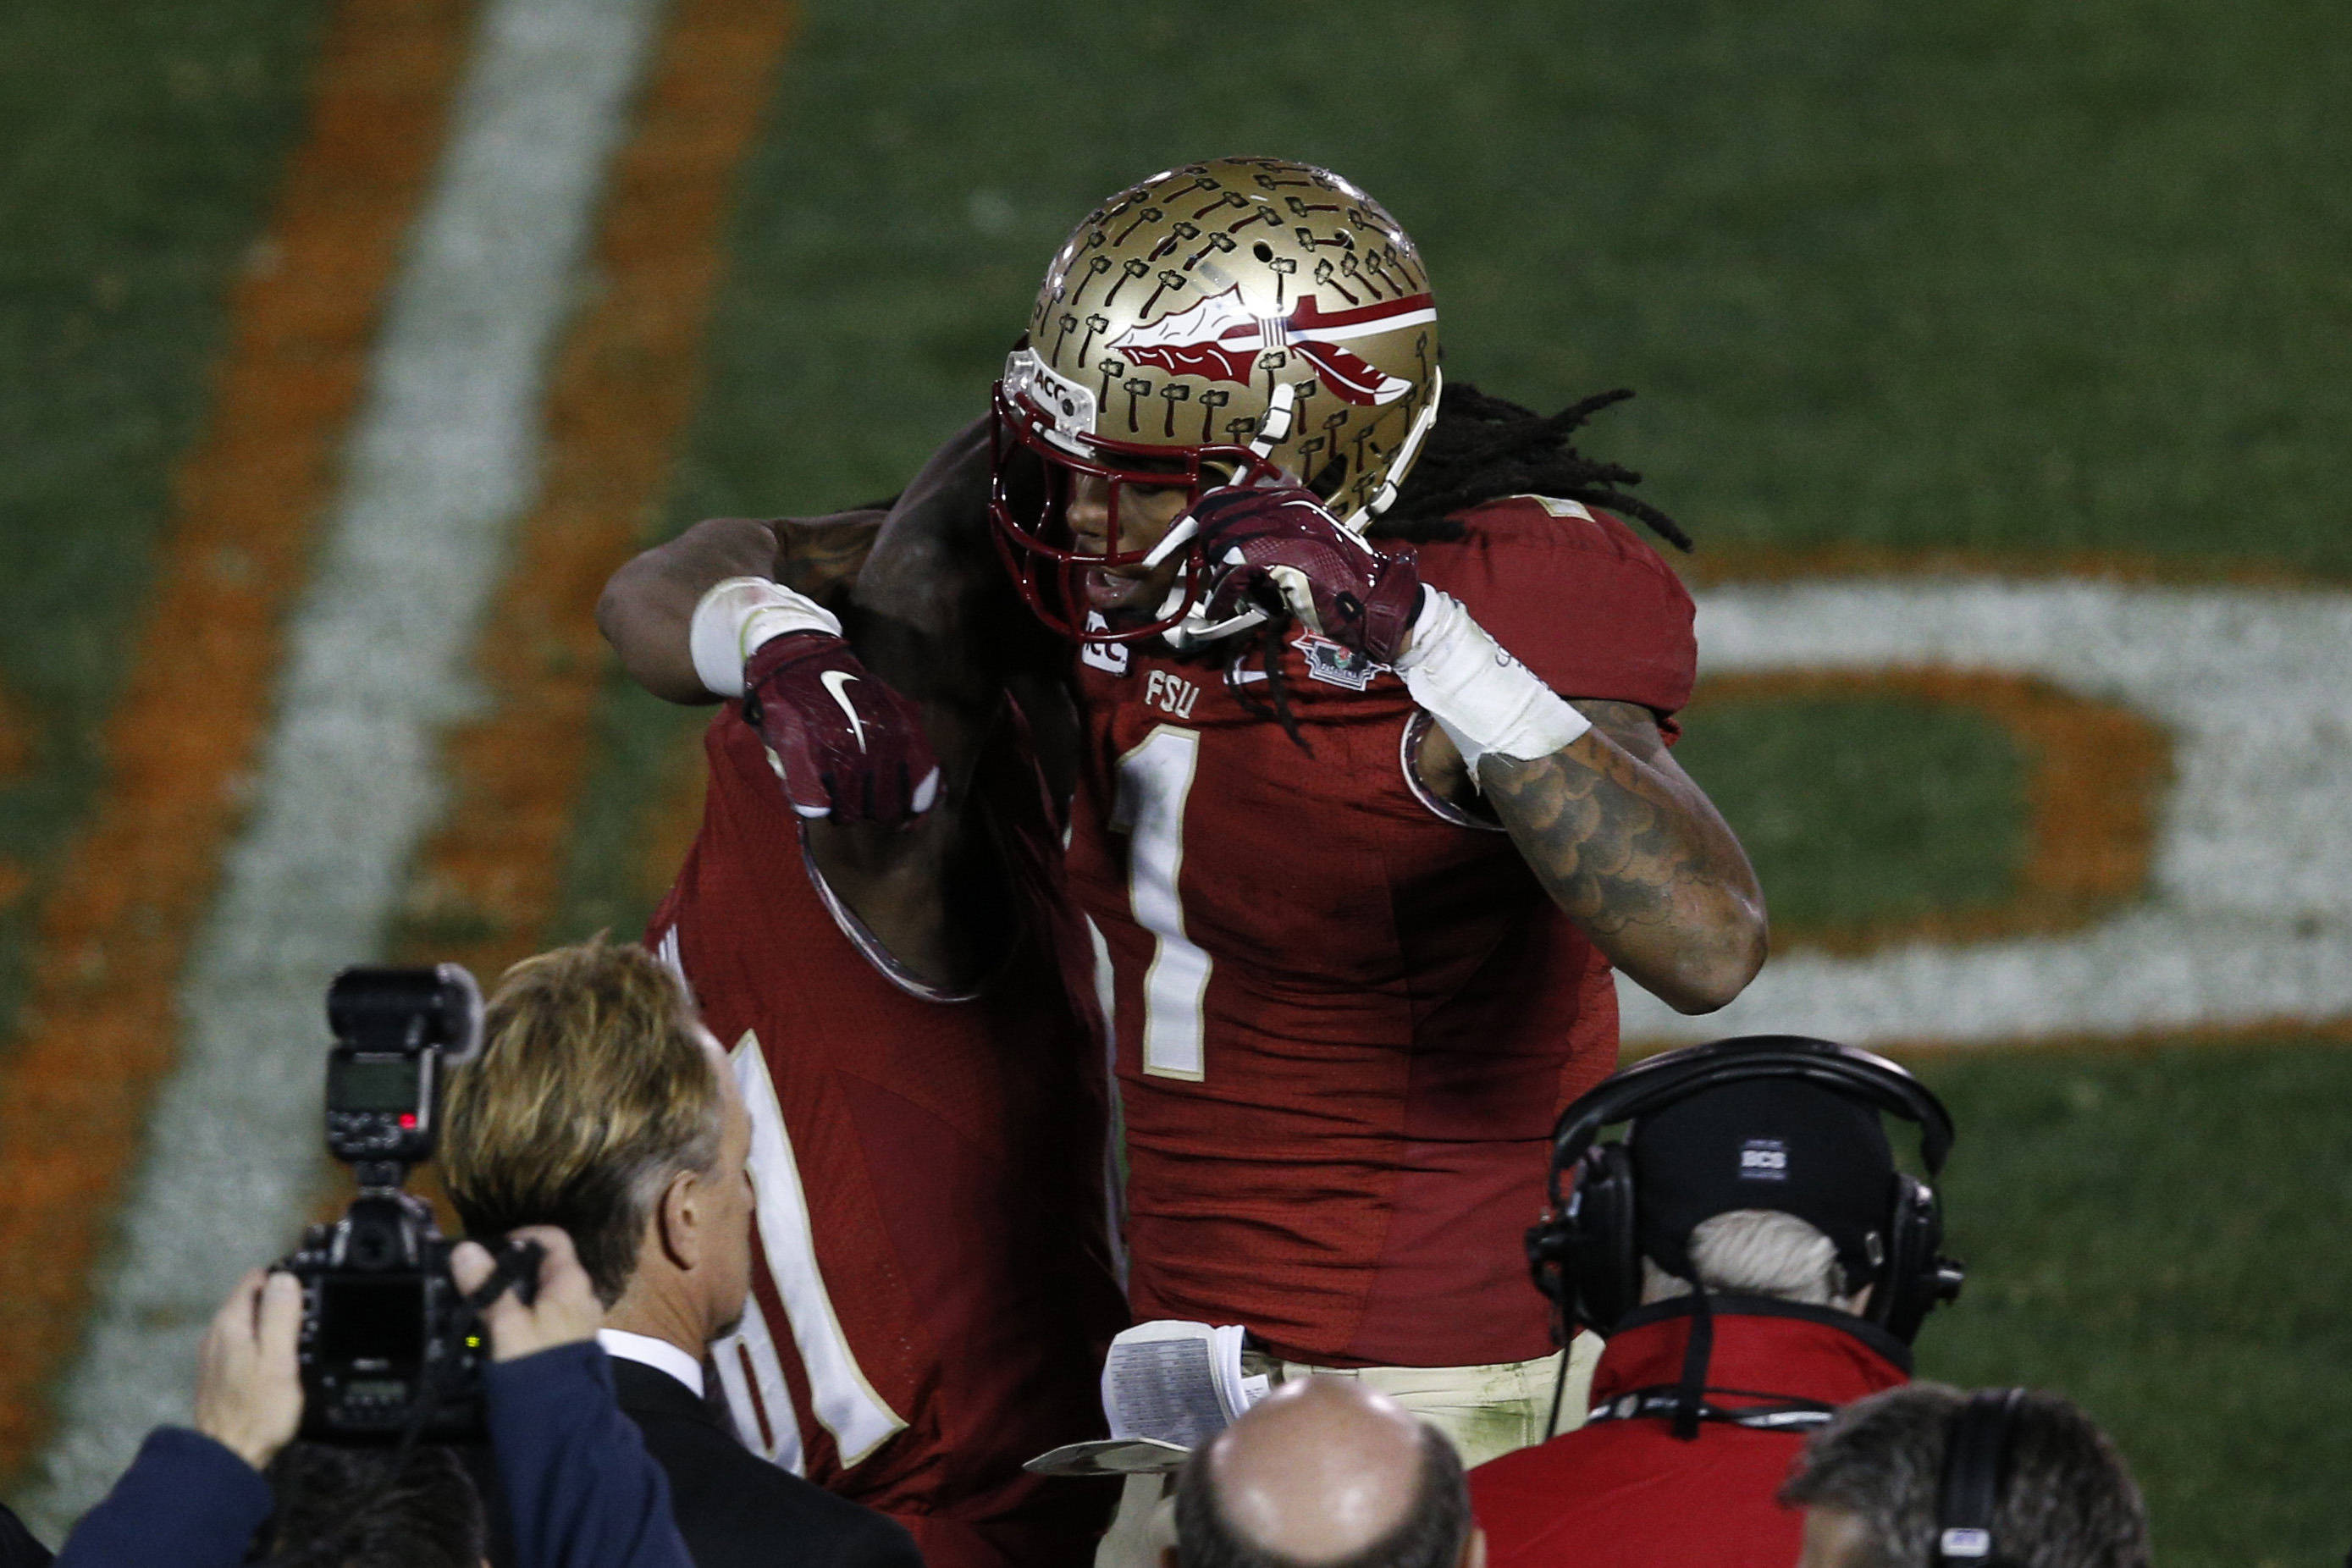 Jan 6, 2014; Pasadena, CA, USA; Florida State Seminoles wide receiver Kelvin Benjamin (1) celebrates after scoring a touchdown against the Auburn Tigers during the second half of the 2014 BCS National Championship game at the Rose Bowl.  Mandatory Credit: Kelvin Kuo-USA TODAY Sports